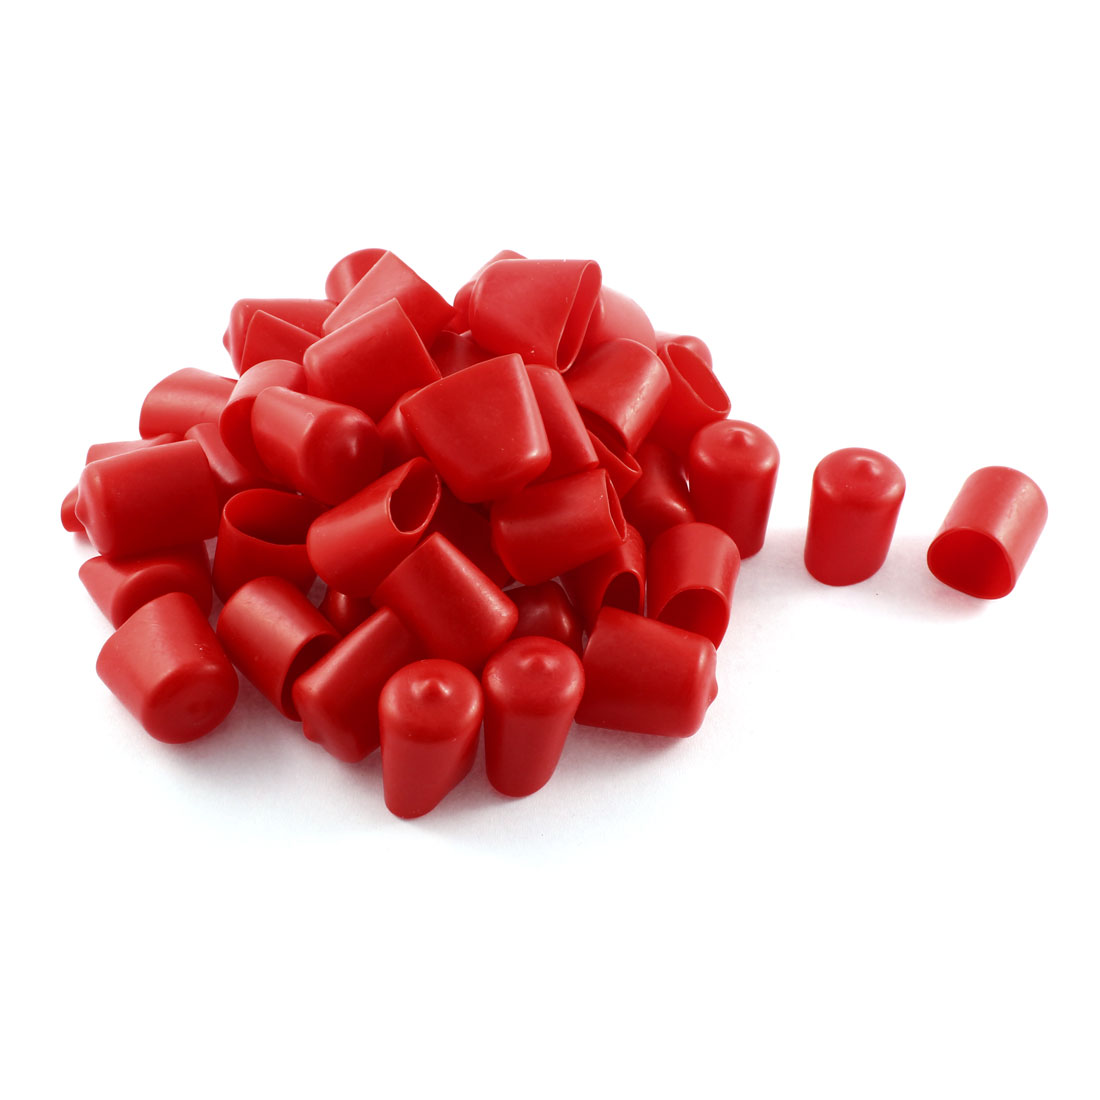 50Pcs Red Soft Plastic PVC Insulated End Sleeves Caps Cover 20mm Dia